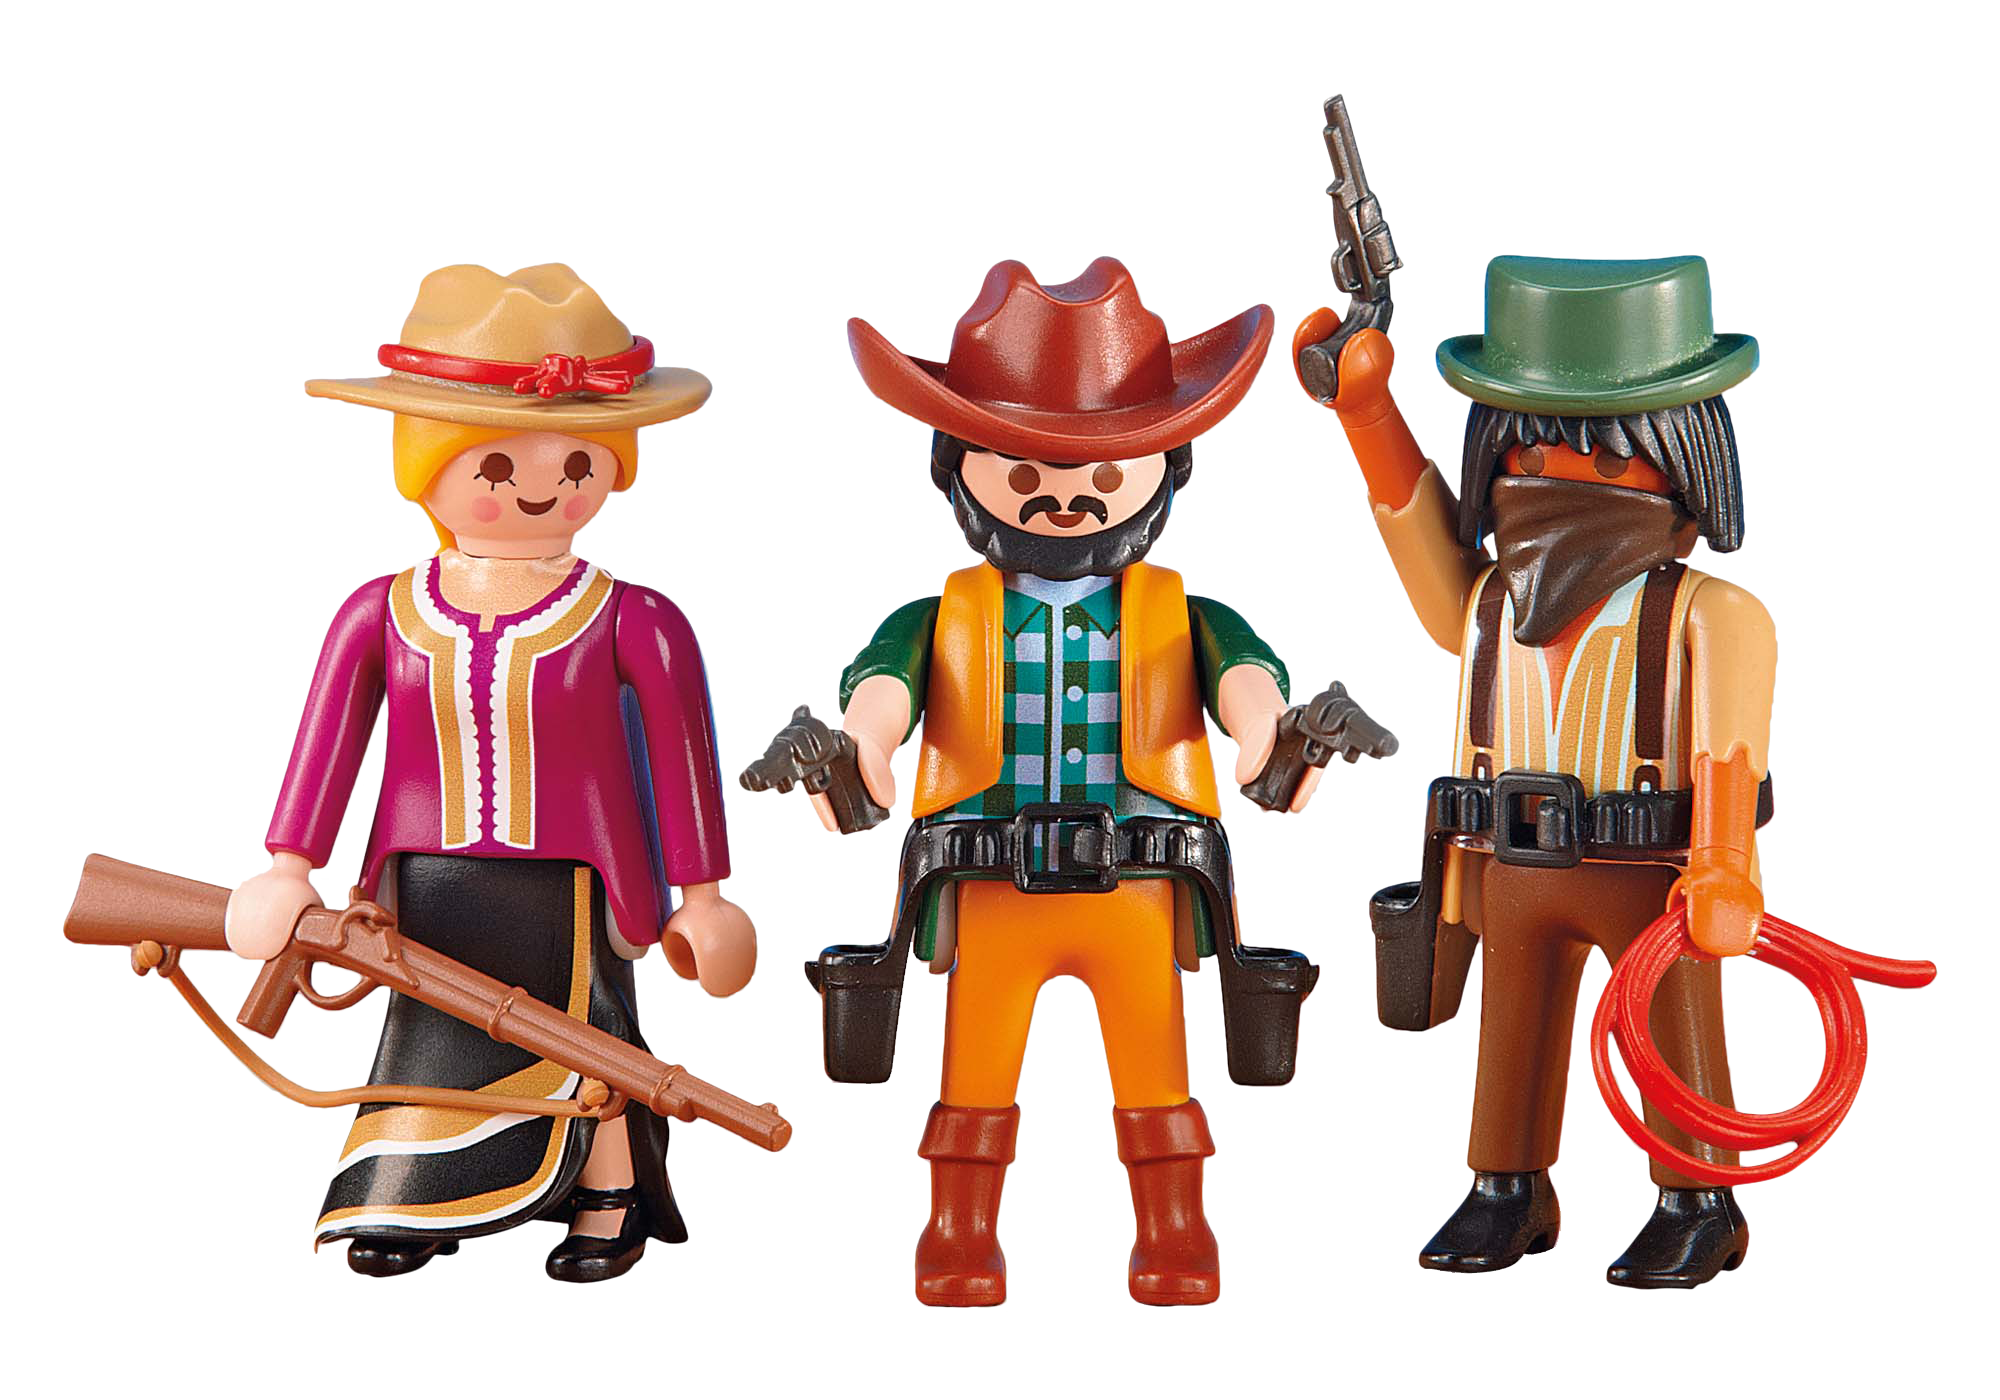 http://media.playmobil.com/i/playmobil/6278_product_detail/2 Cowboys and Cowgirl